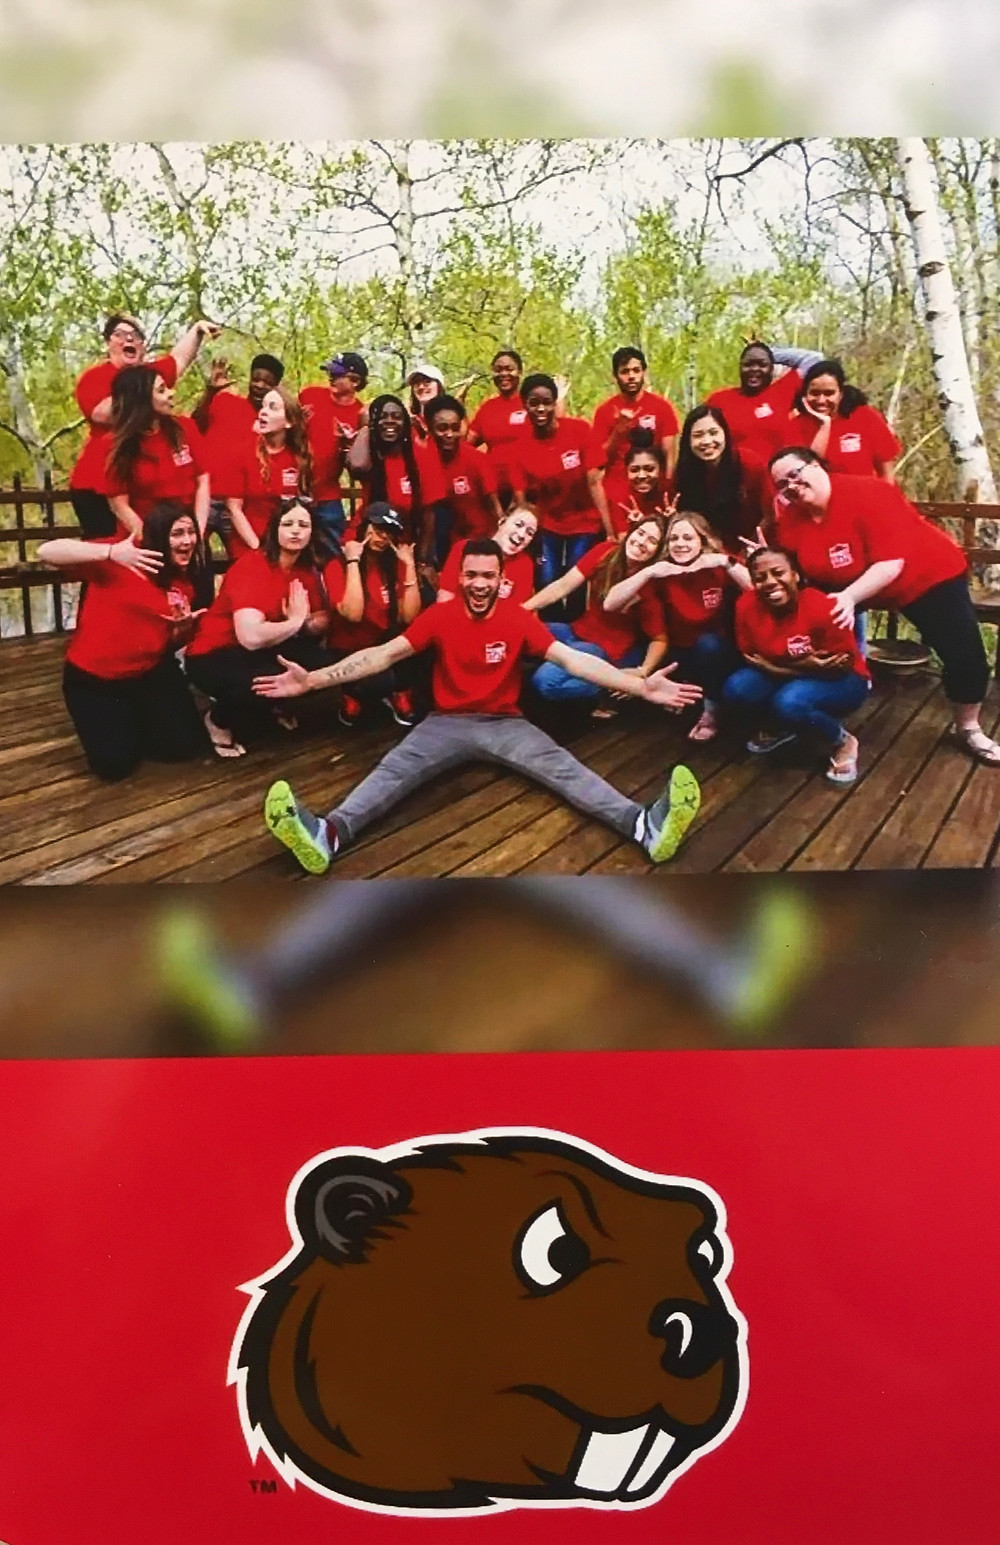 Minot State student orientation leaders. Submitted photo.